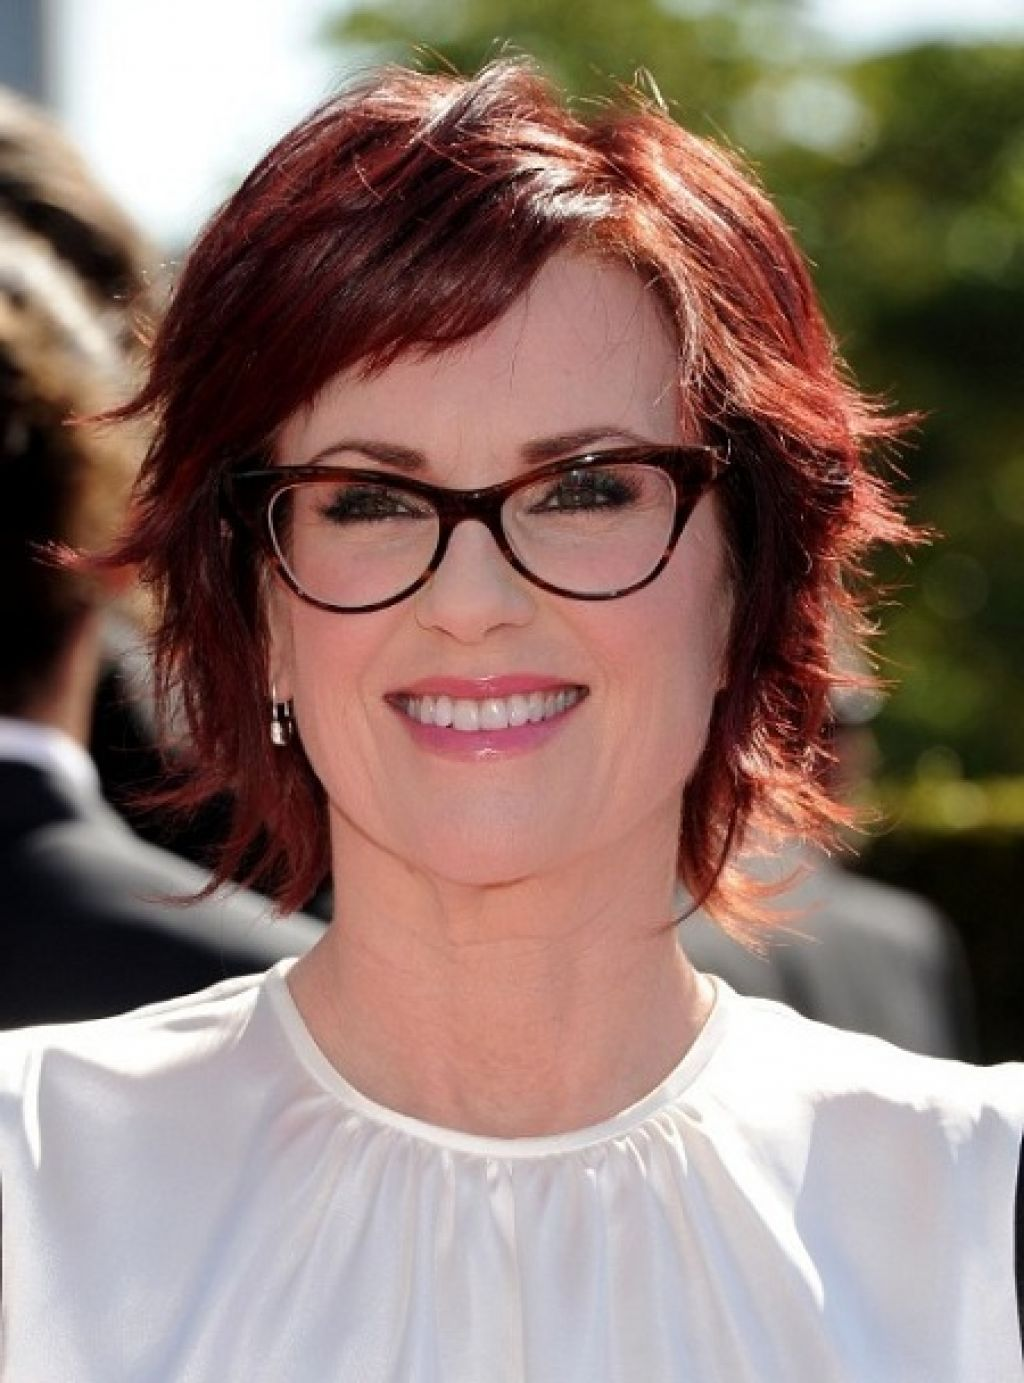 hairstyles for women with thinning hair on top : -hairstyles-for-women-over-60-over-50-with-glasses-short-hairstyles ...